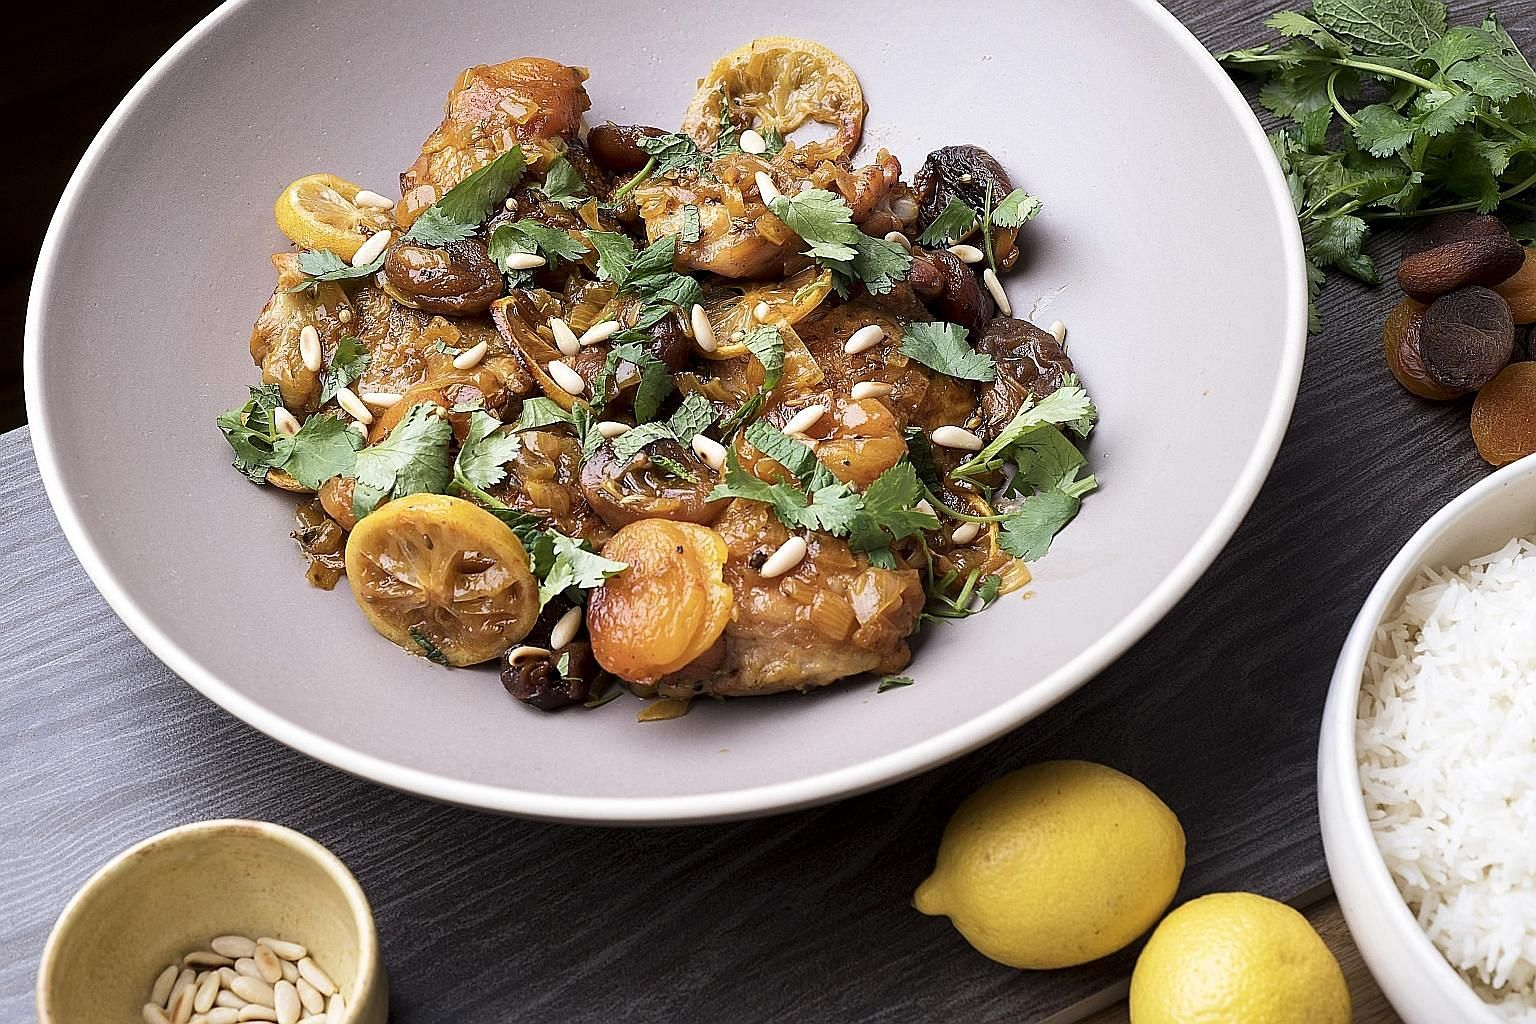 Braising keeps the chicken in this dish tender and succulent.